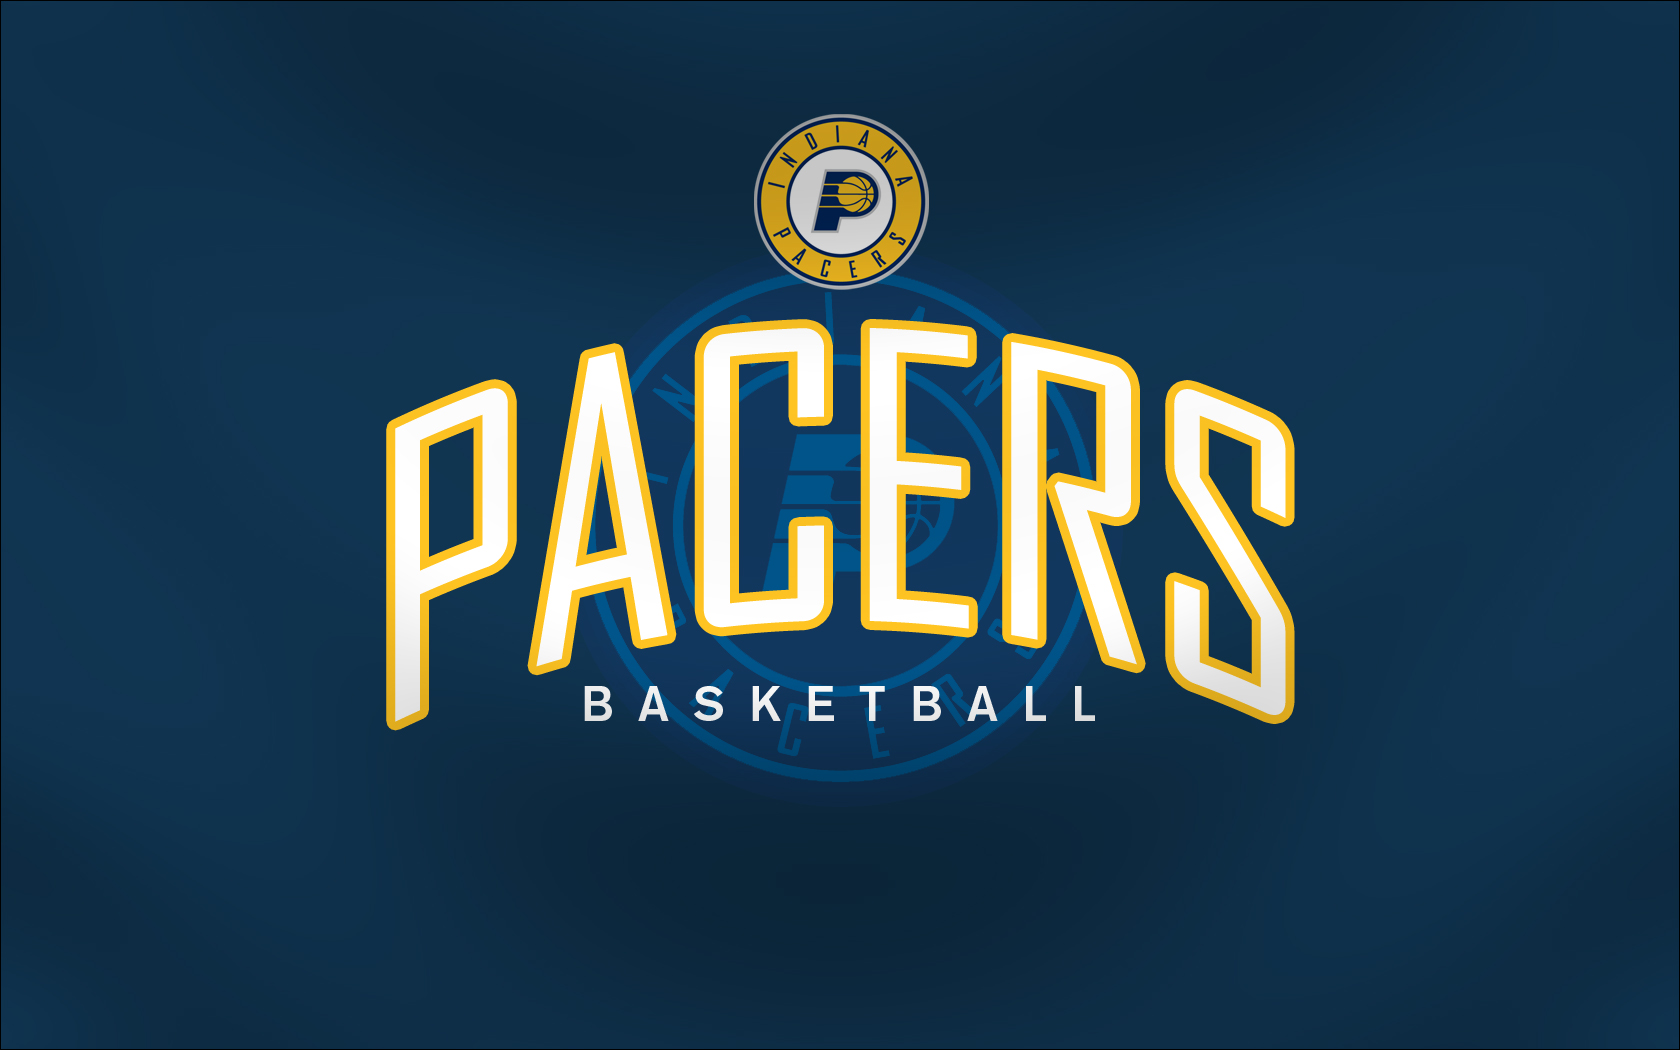 Pacers Basketball by monkeybiziu 1680 x 1050 1680x1050